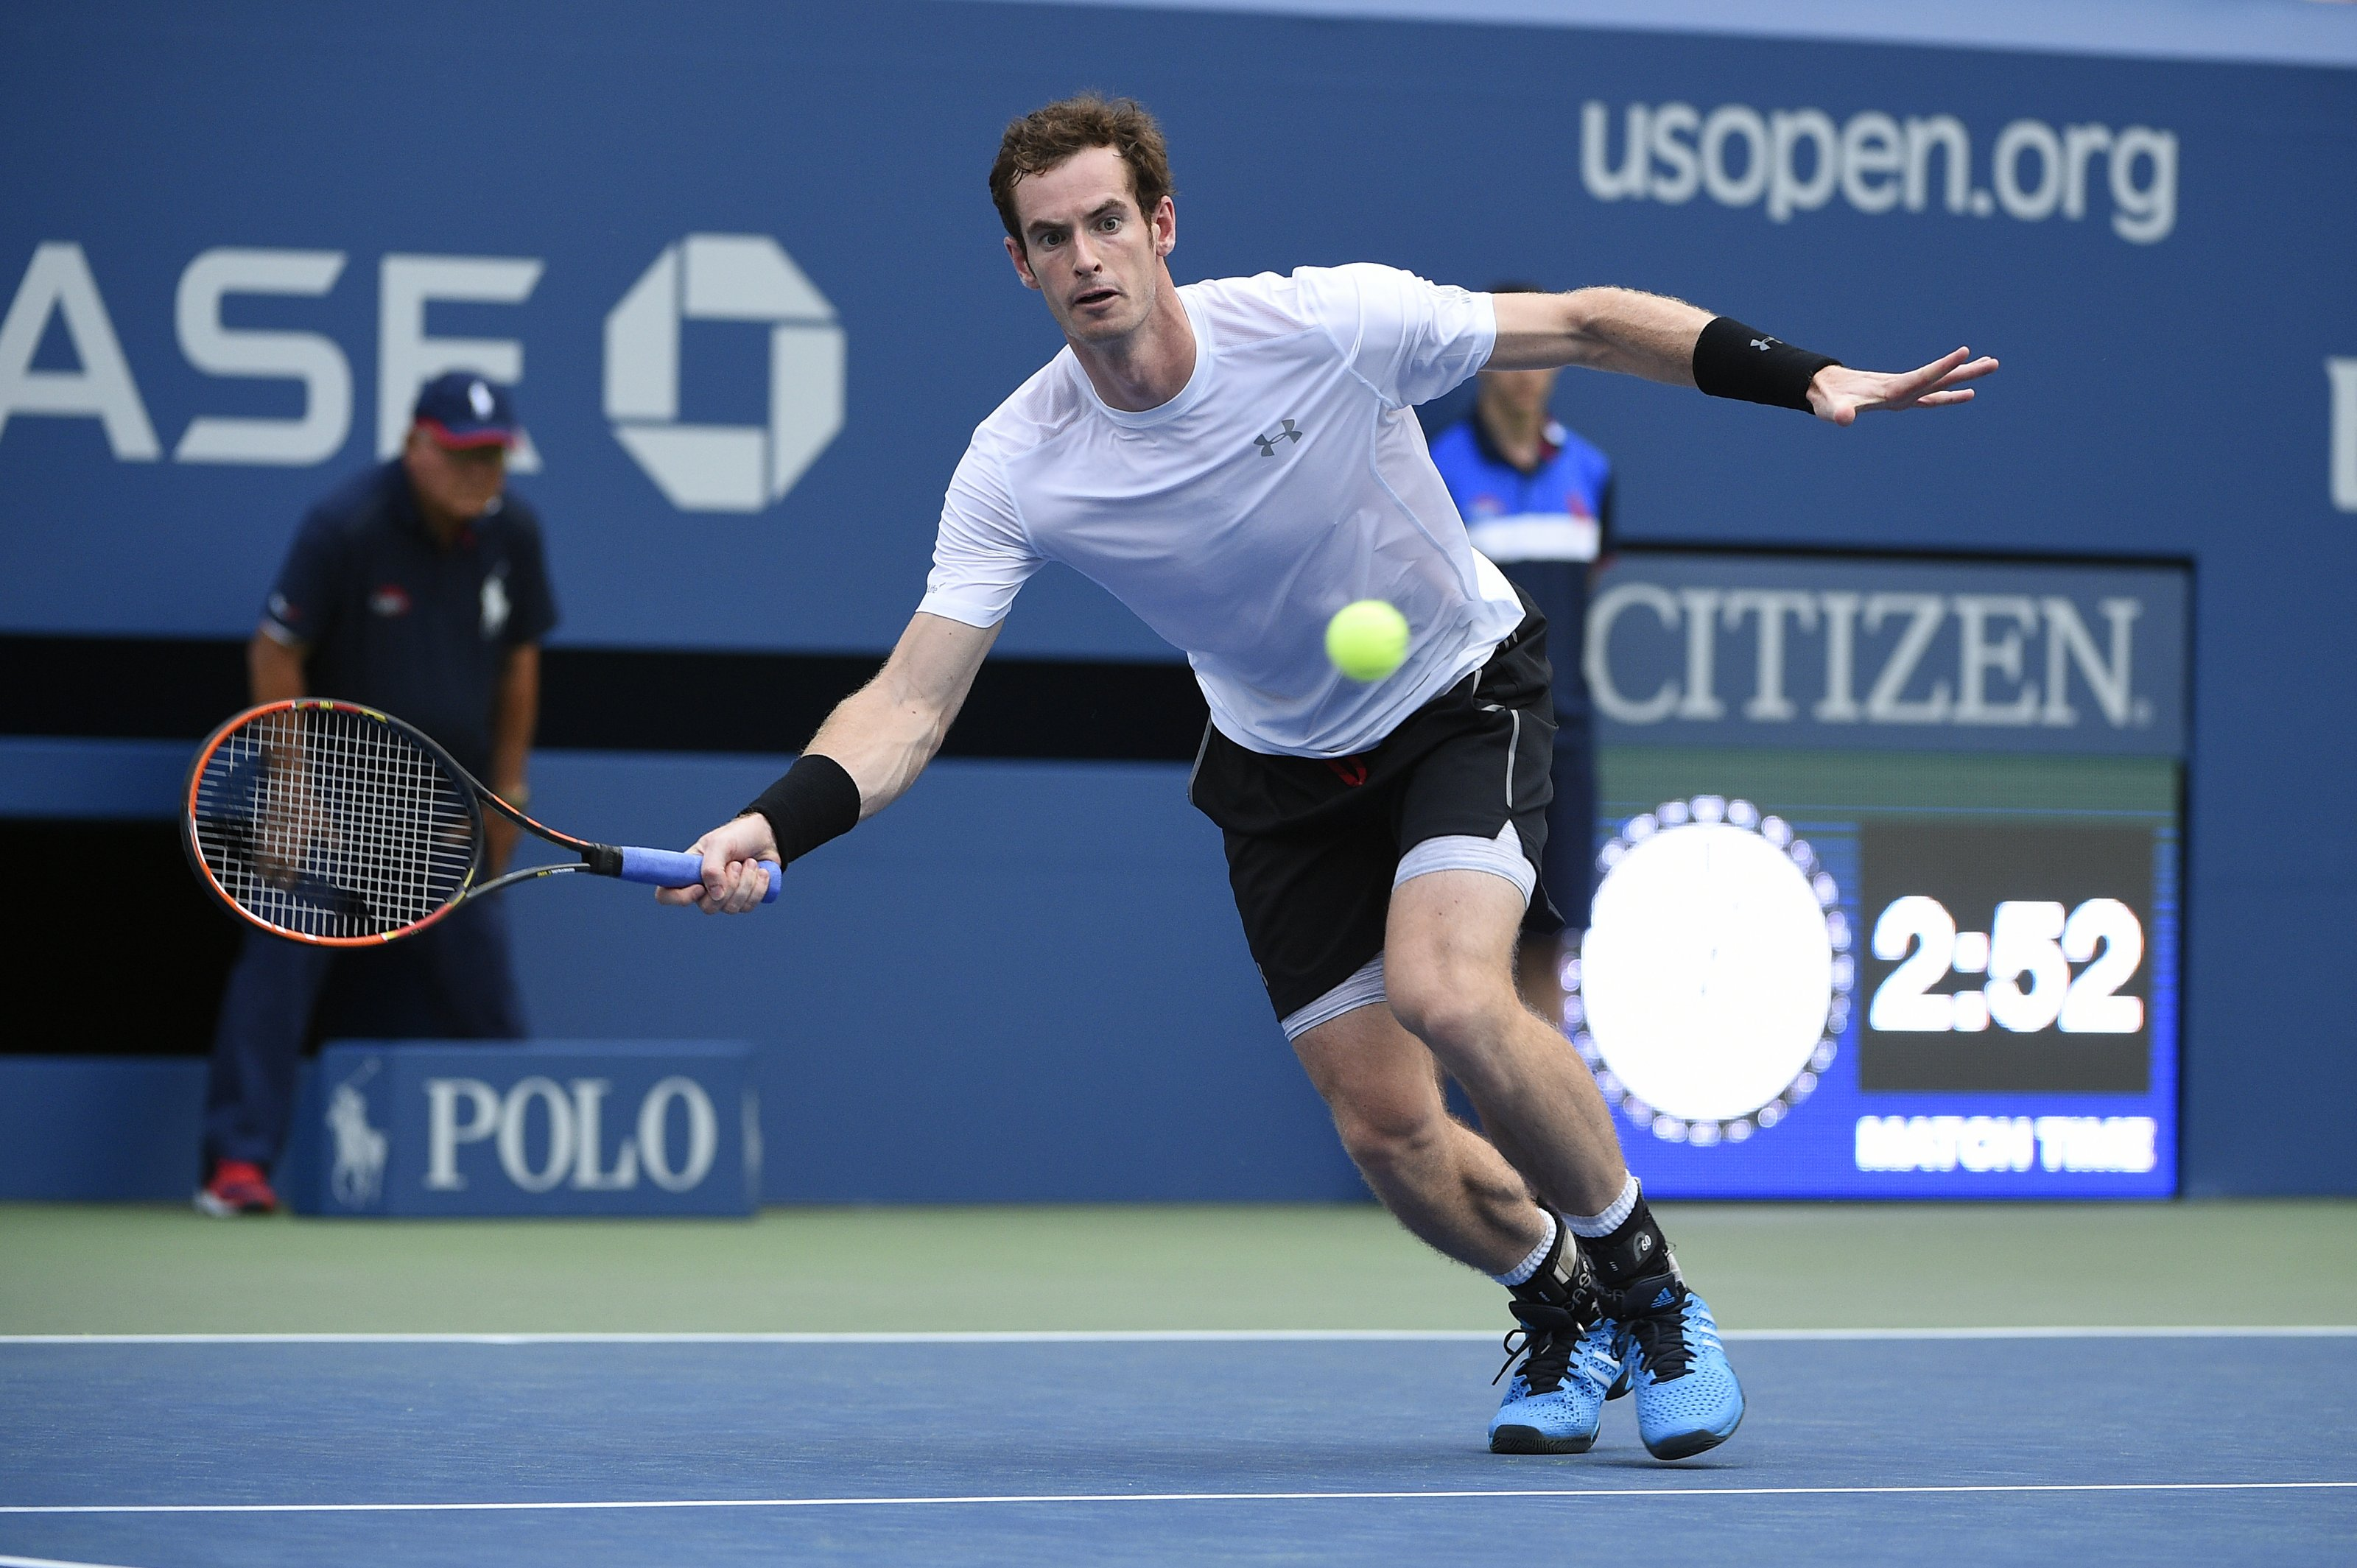 Andy Murray of Scotland plays his second round match at the US Open at the USTA Billie Jean King National Tennis Center in the Flushing neighborhood of the Queens borough of New York City, NY, USA on September 3, 2015. Photo by Corinne Dubreuil/ABACAPRESS.COM